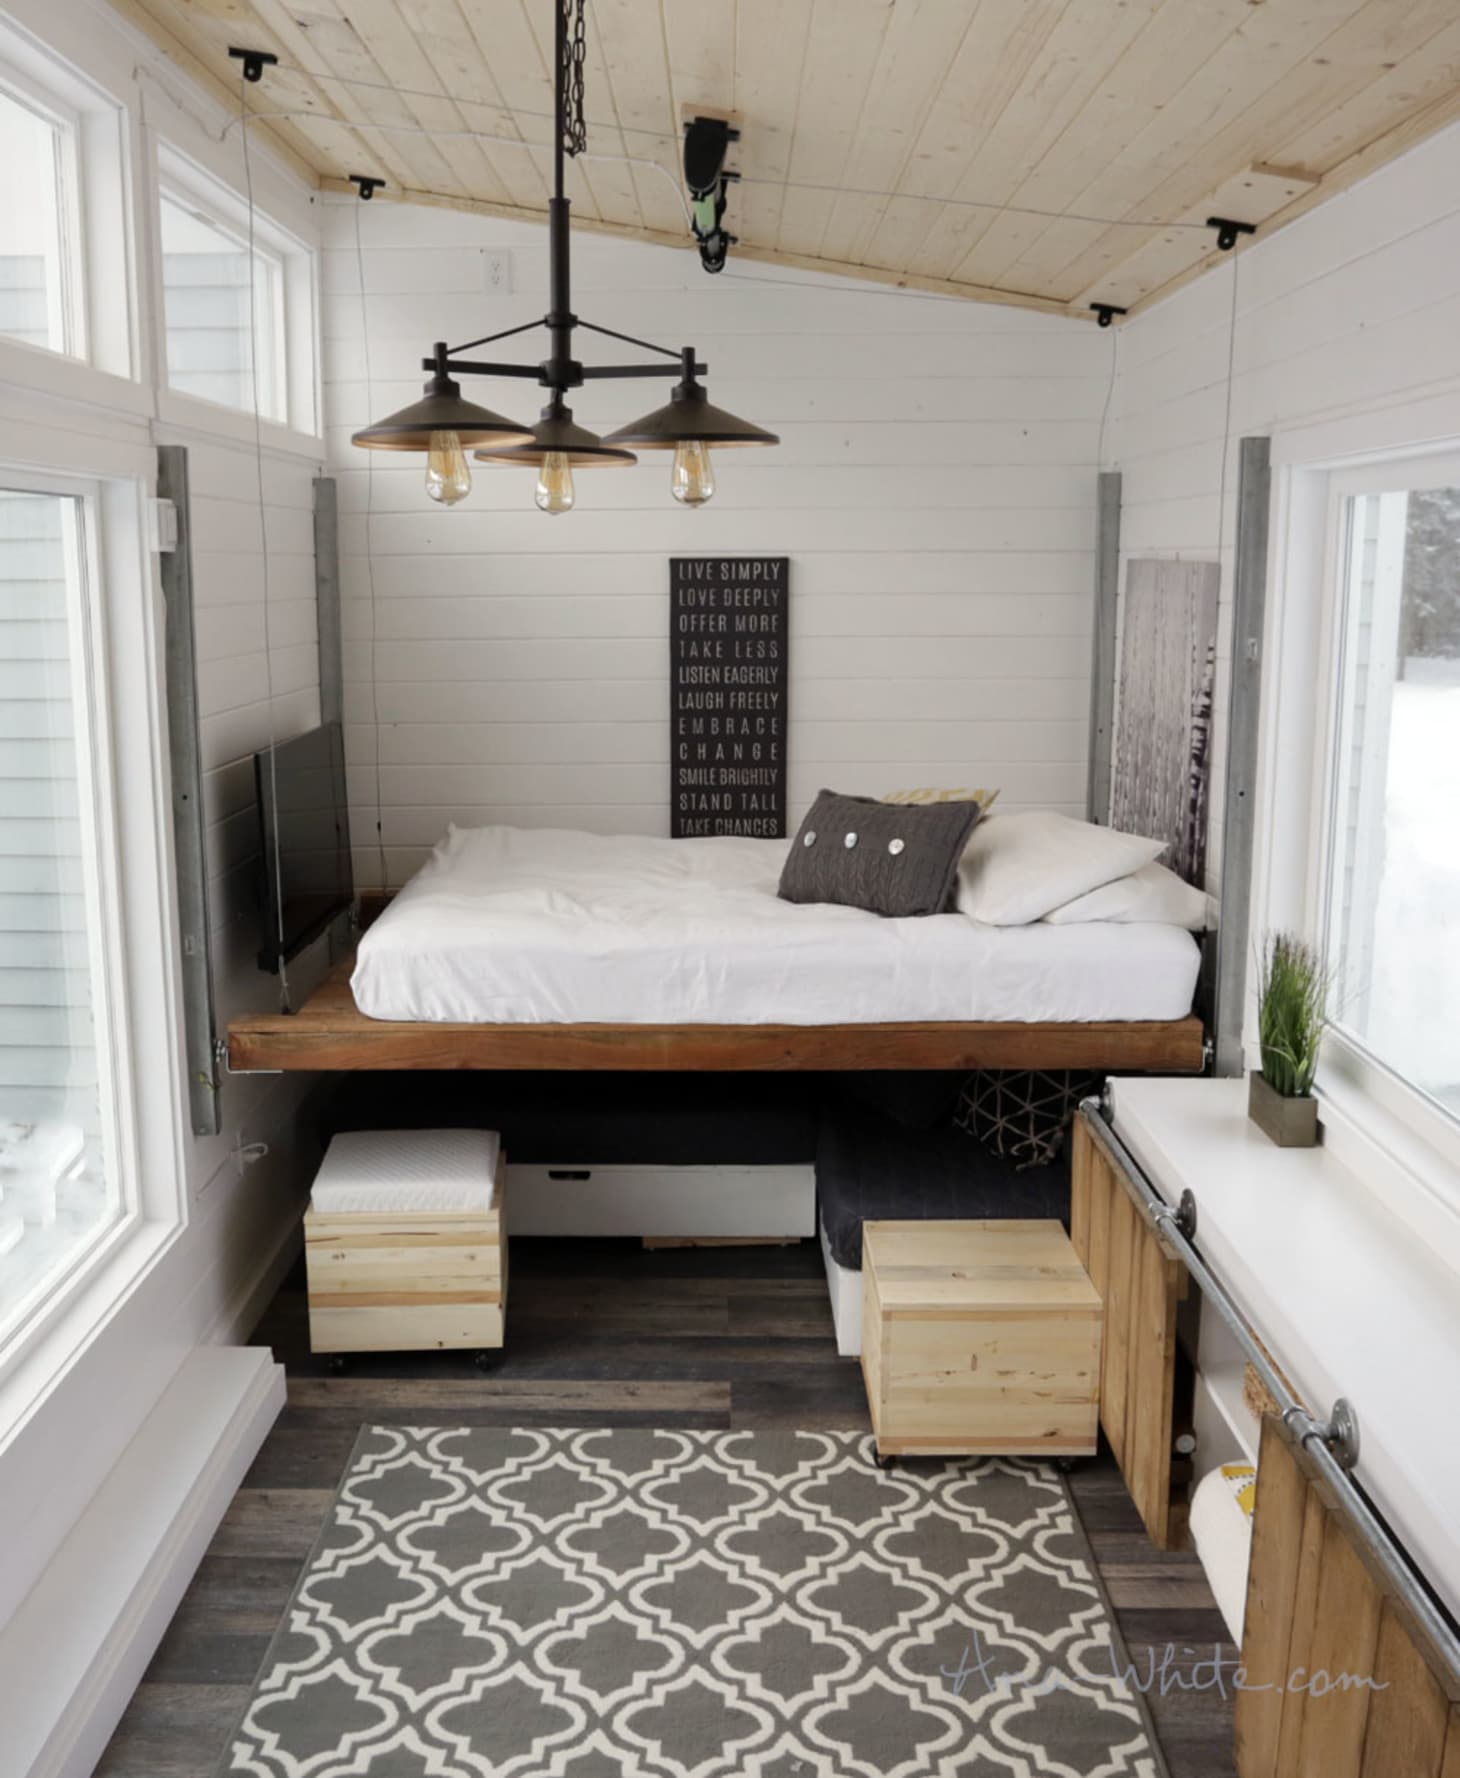 Awe Inspiring A Tiny House With A Unique Clever Bedroom Solution Download Free Architecture Designs Intelgarnamadebymaigaardcom